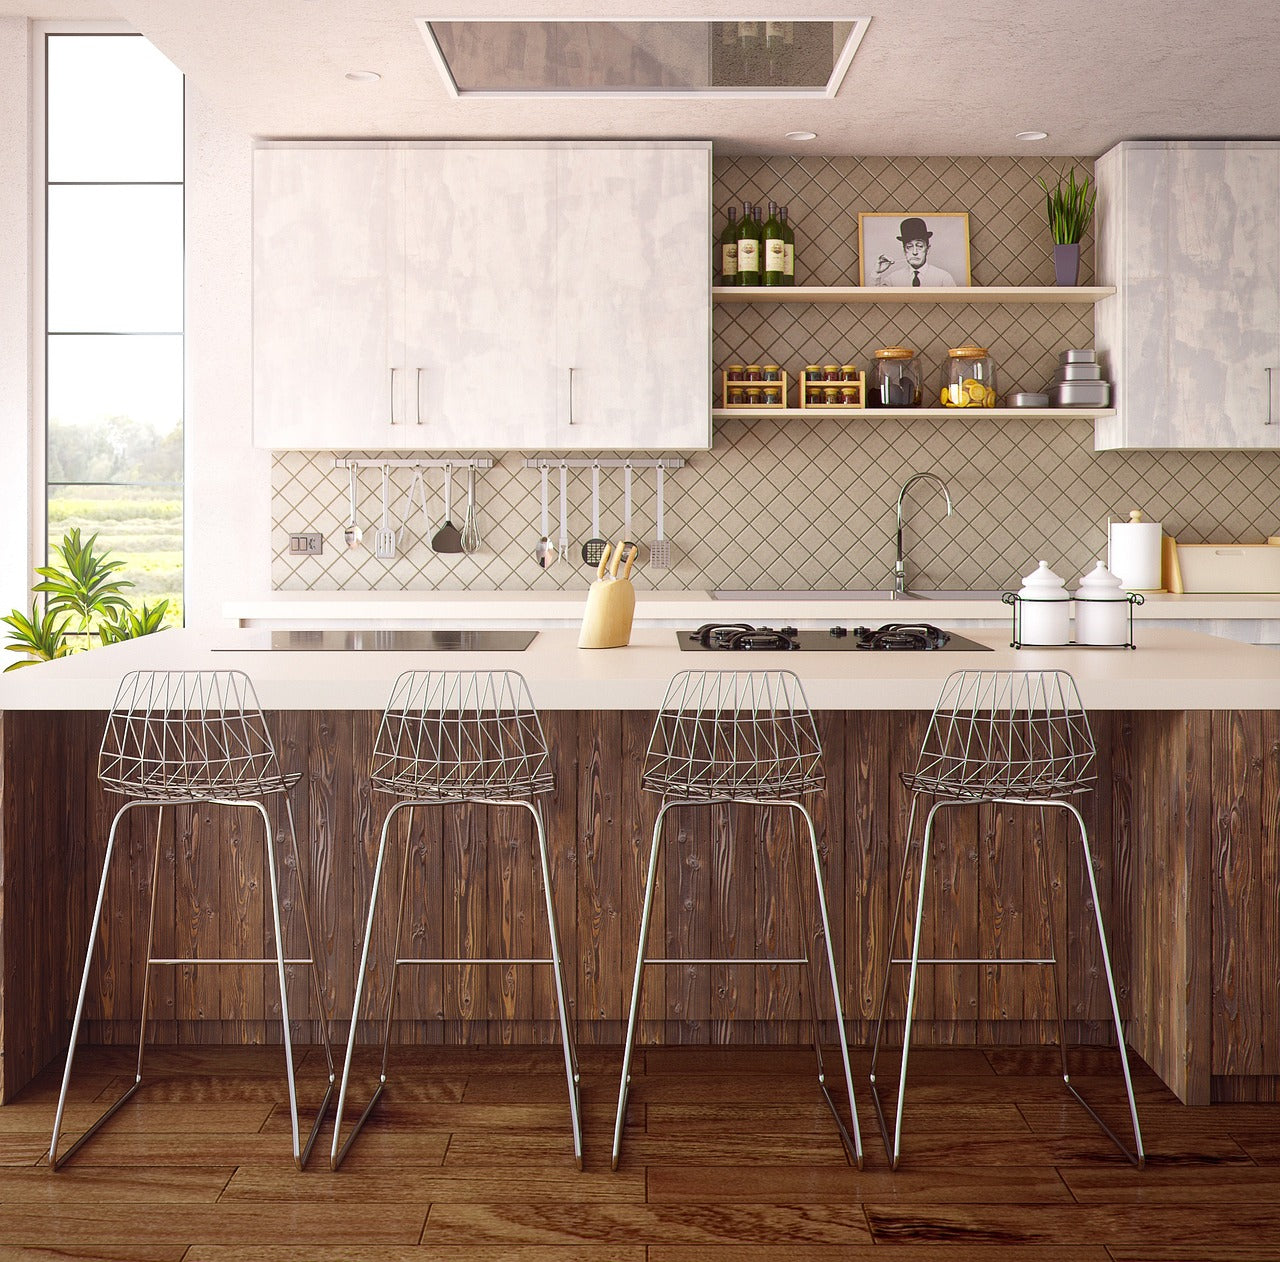 Kitchen Worktops to Complement your Space